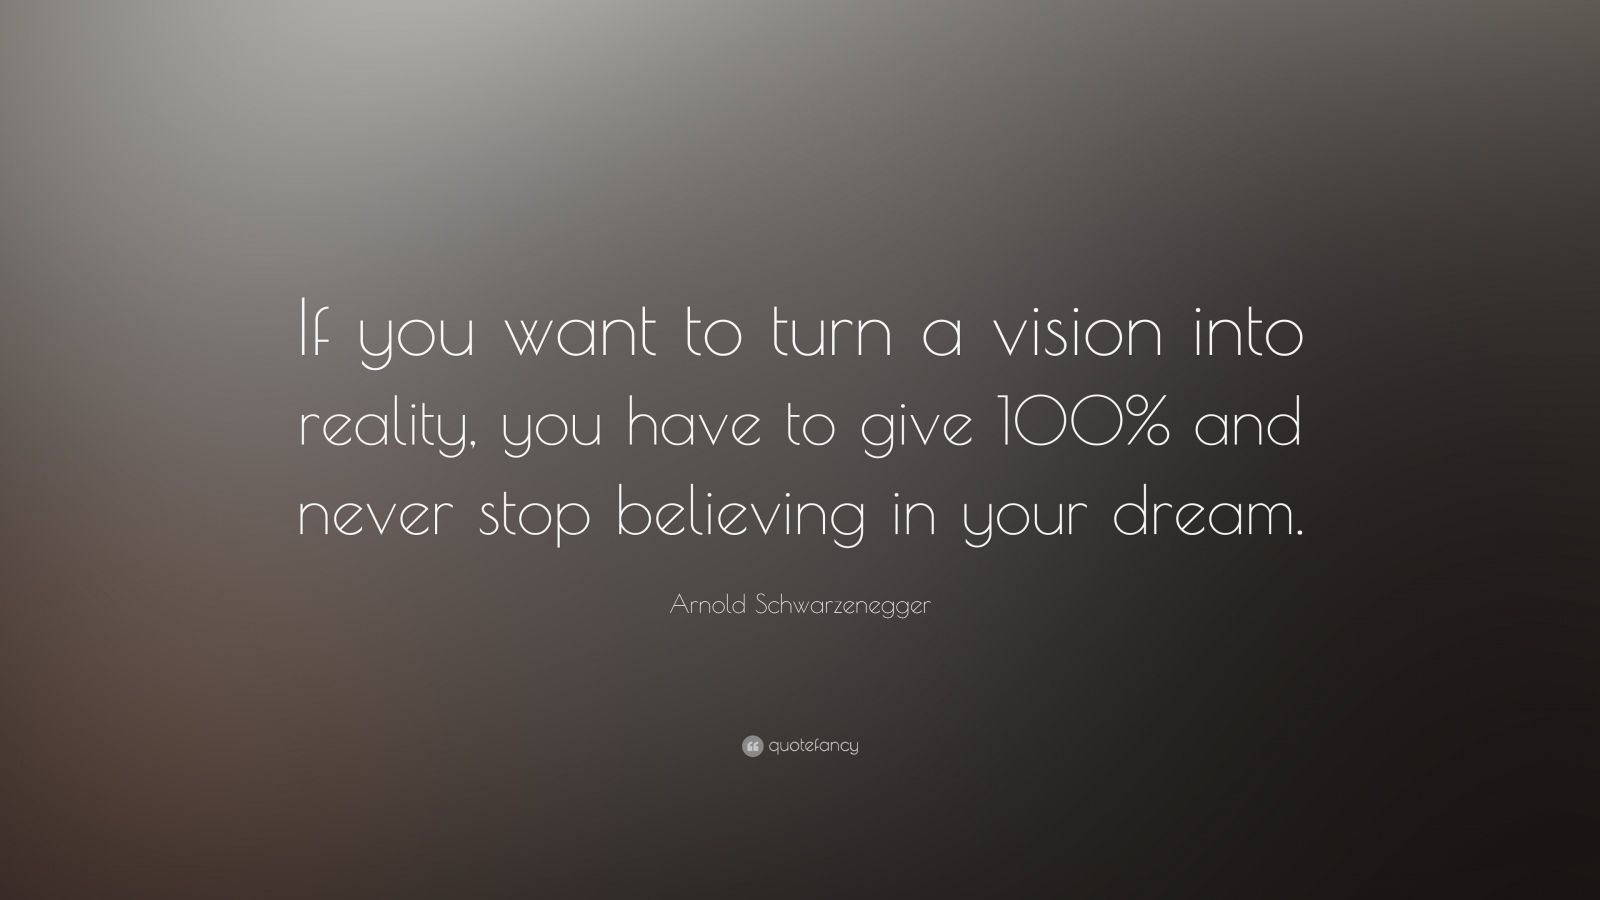 """Arnold Schwarzenegger Quote: """"If you want to turn a vision into reality, you have to give 100% and never stop believing in your dream."""""""